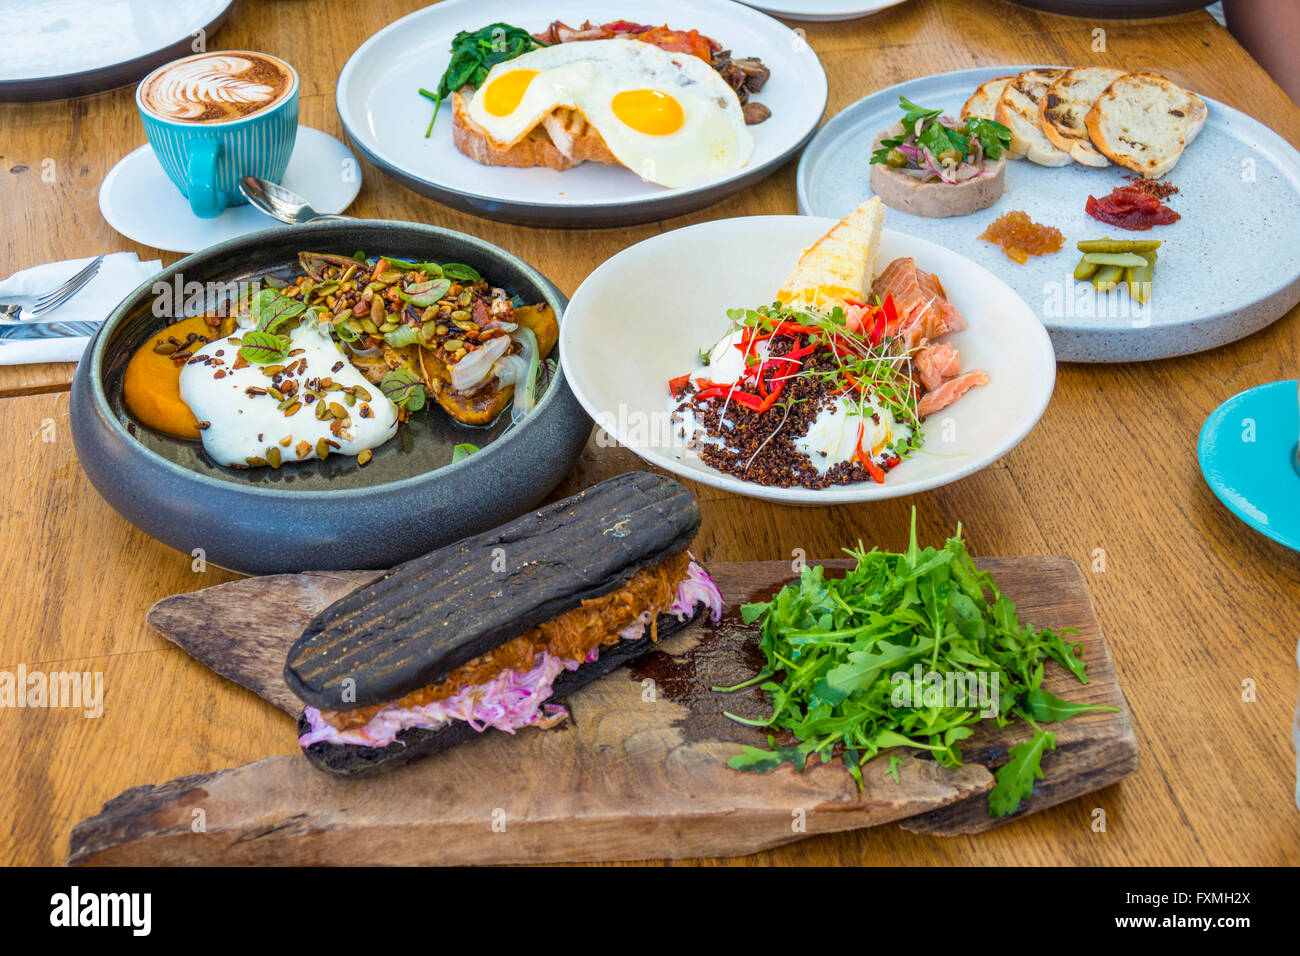 Hearty Breakfast, Semminyak, Bali, Indonesia - Stock Image